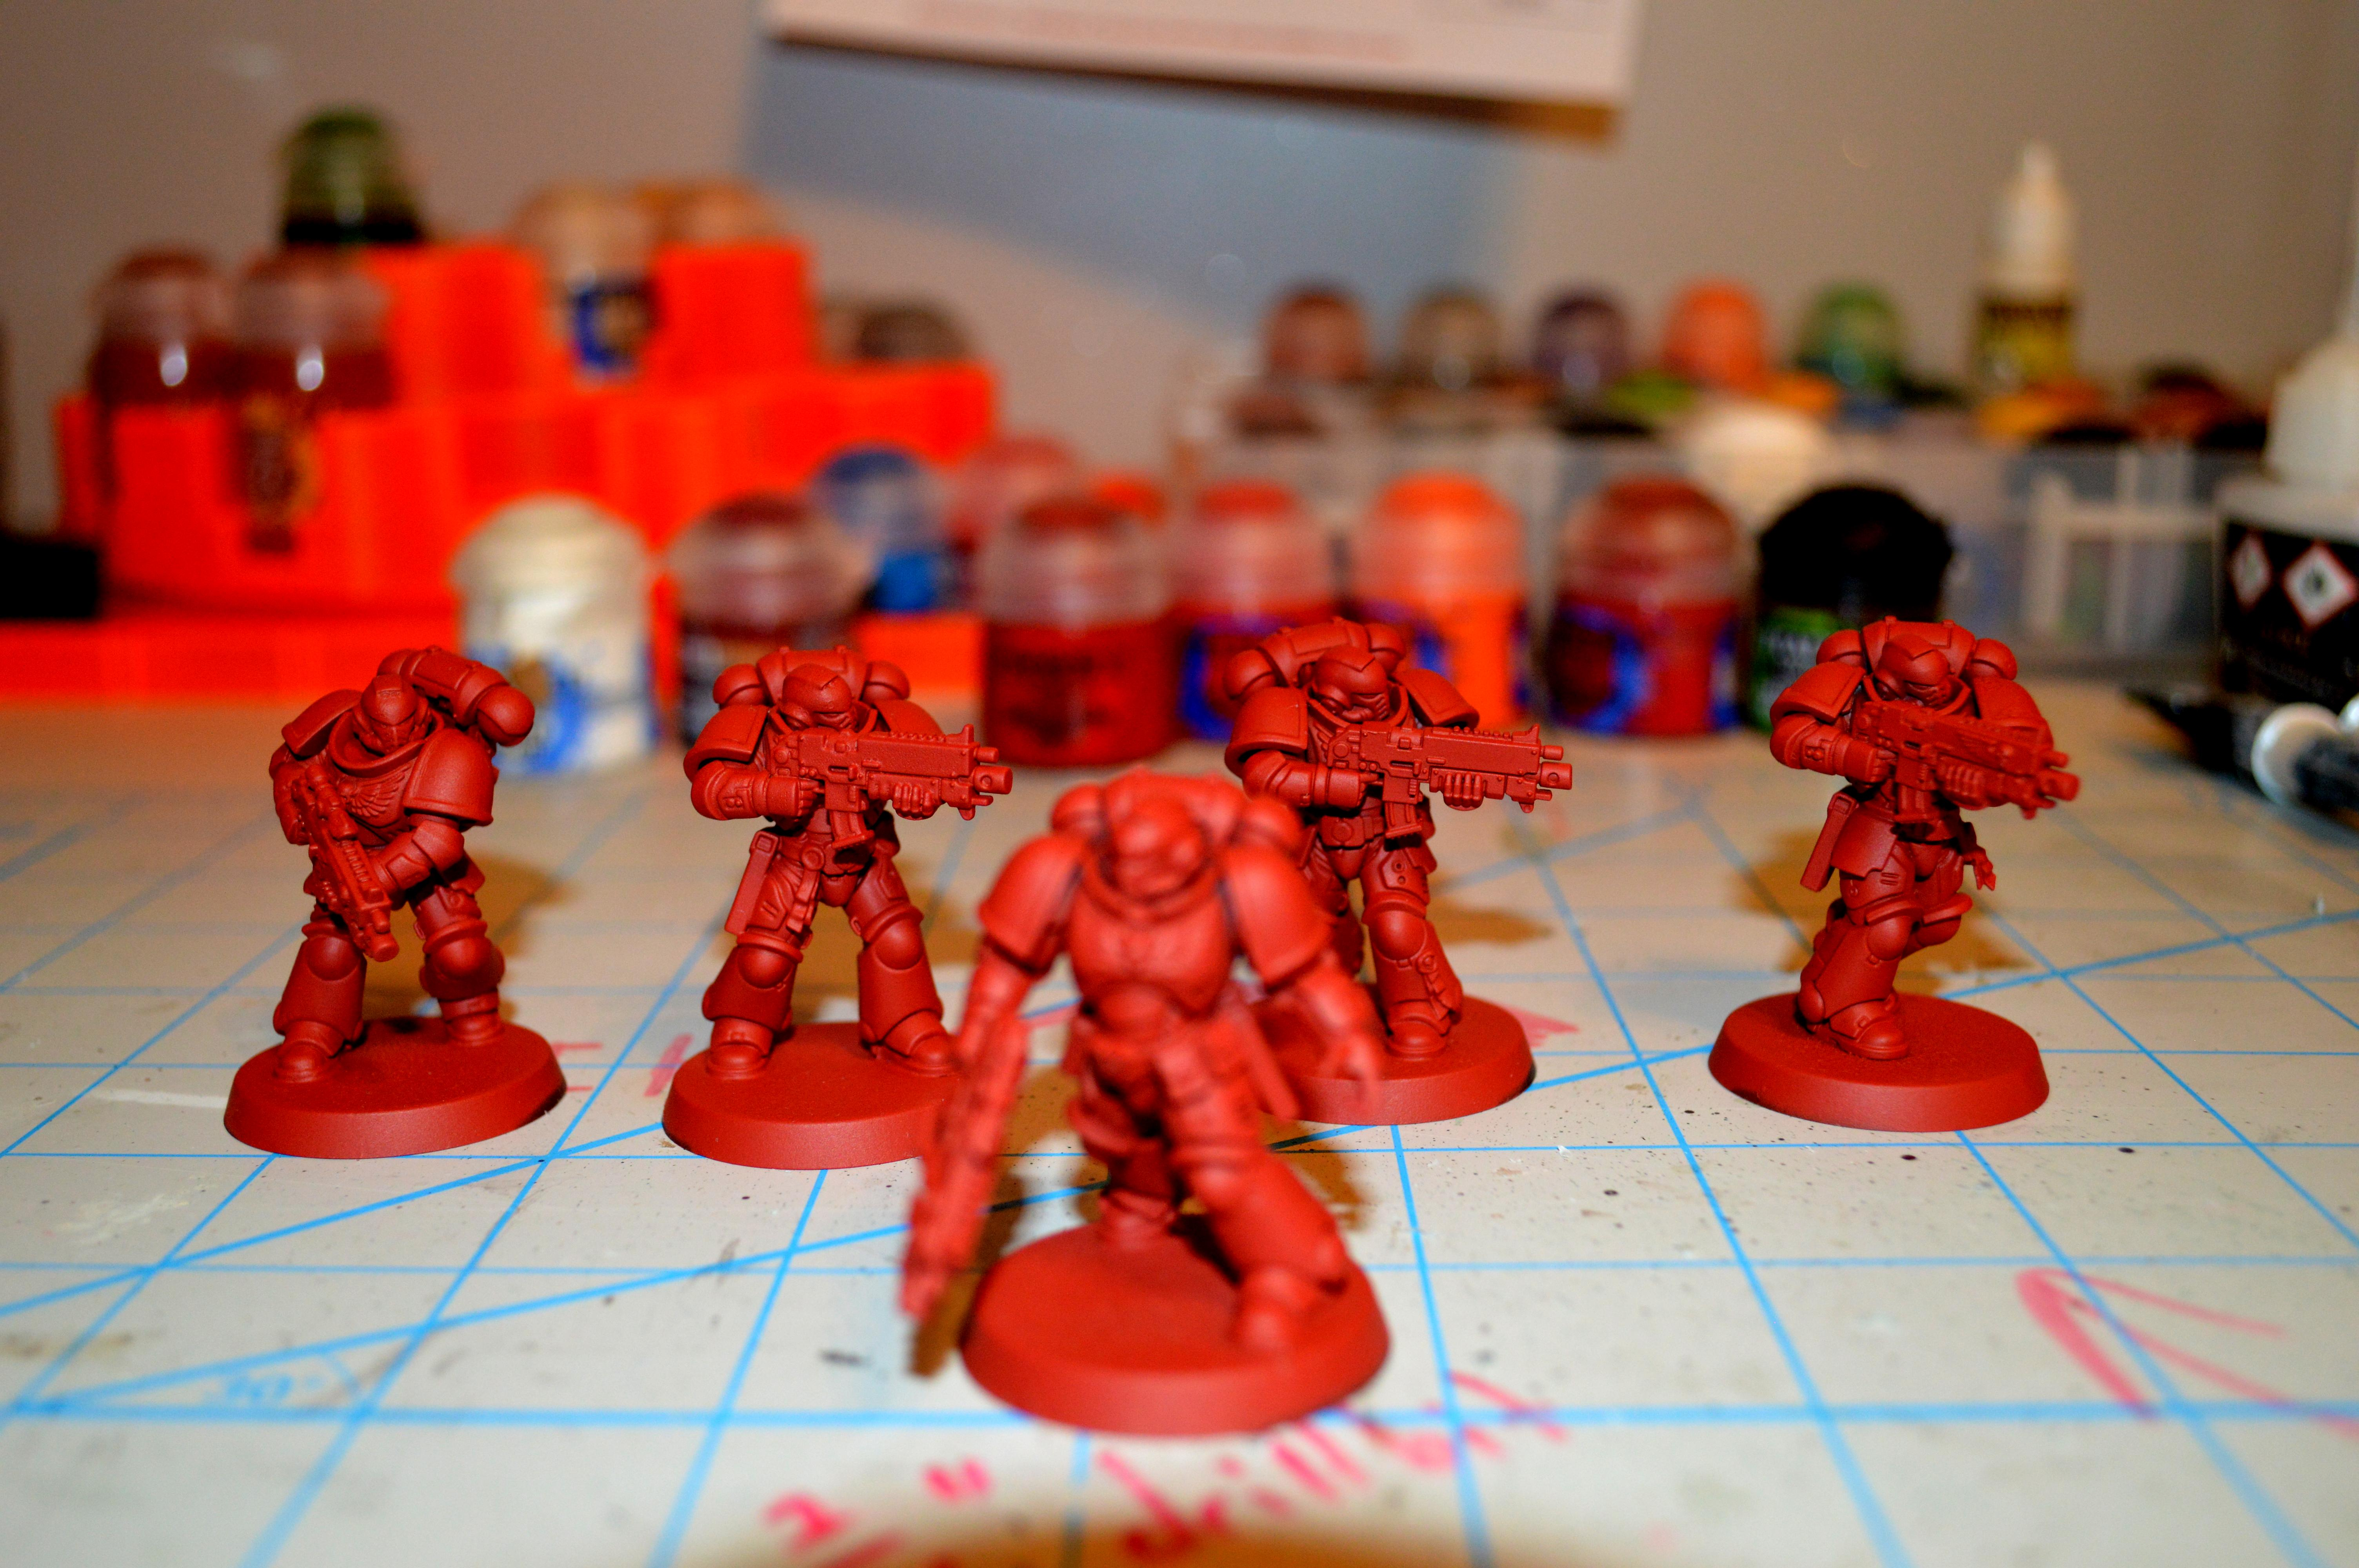 Cool, Everything, Finished, Hot, Mini, Miniature, Not Specific, Painting, Random, Upload, Work In Progress